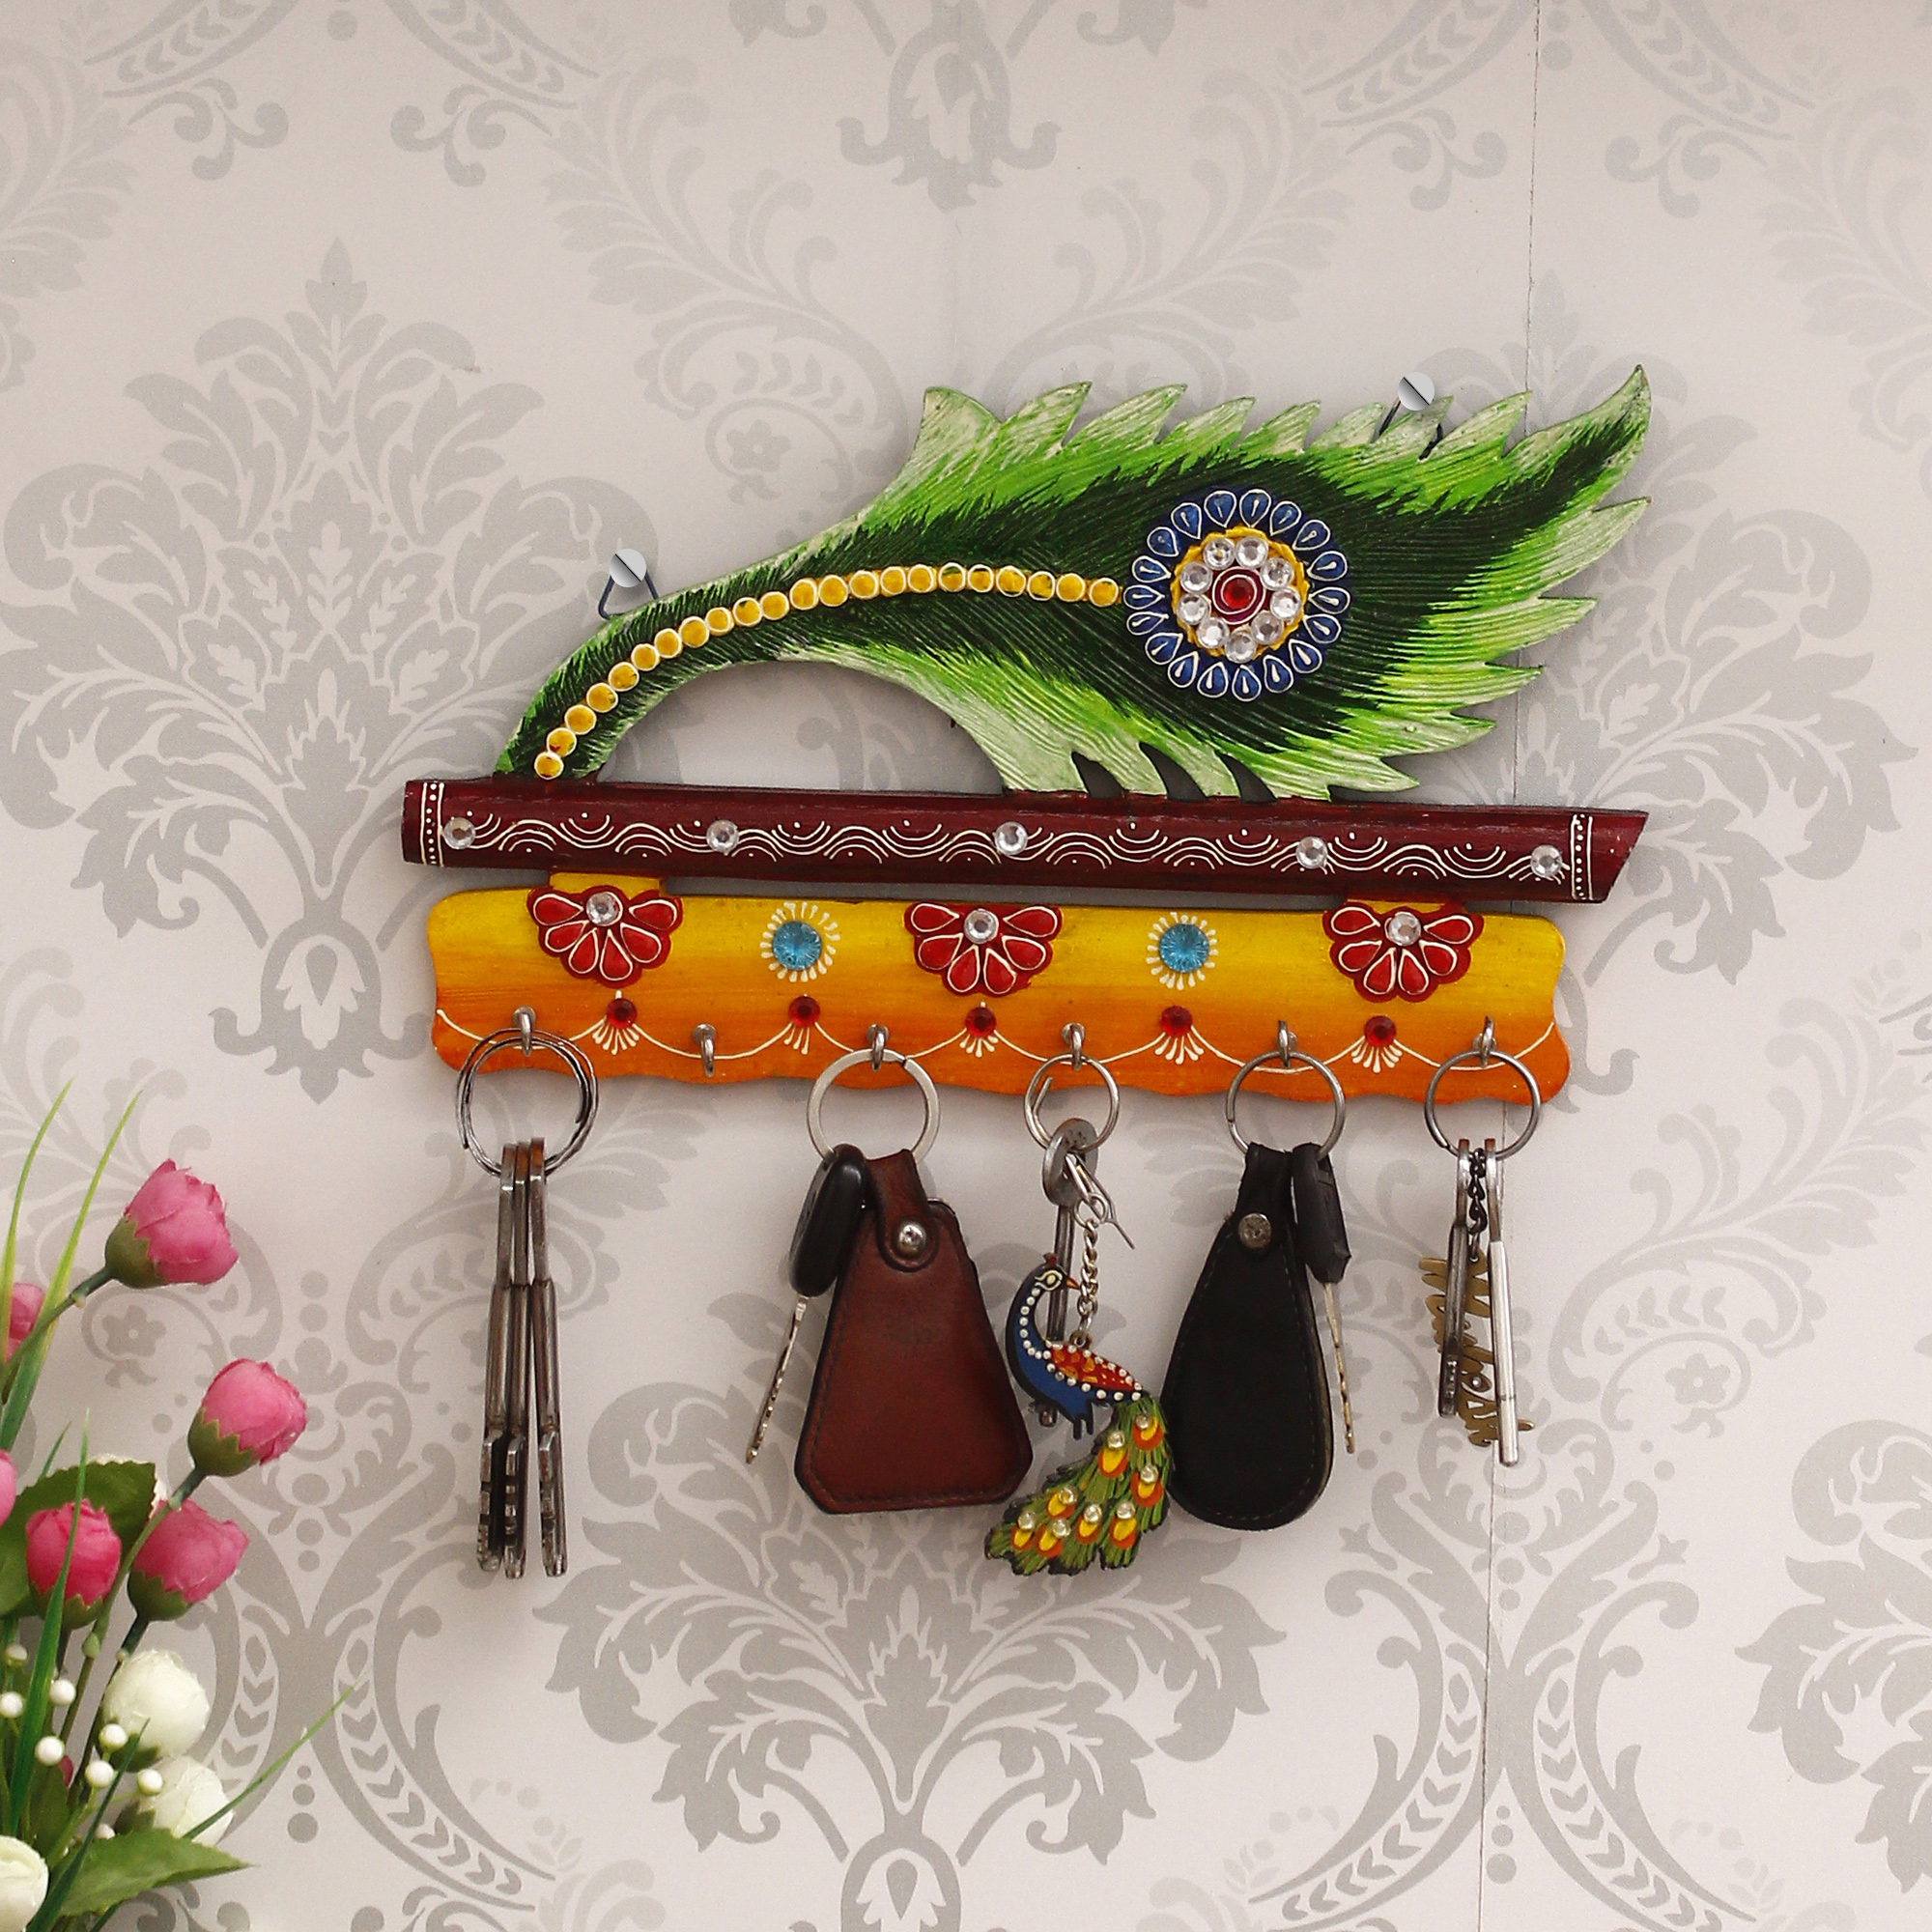 Papier Mache and Wooden Peacock Feather 5 Hooks Key Holder Indian Home Decor